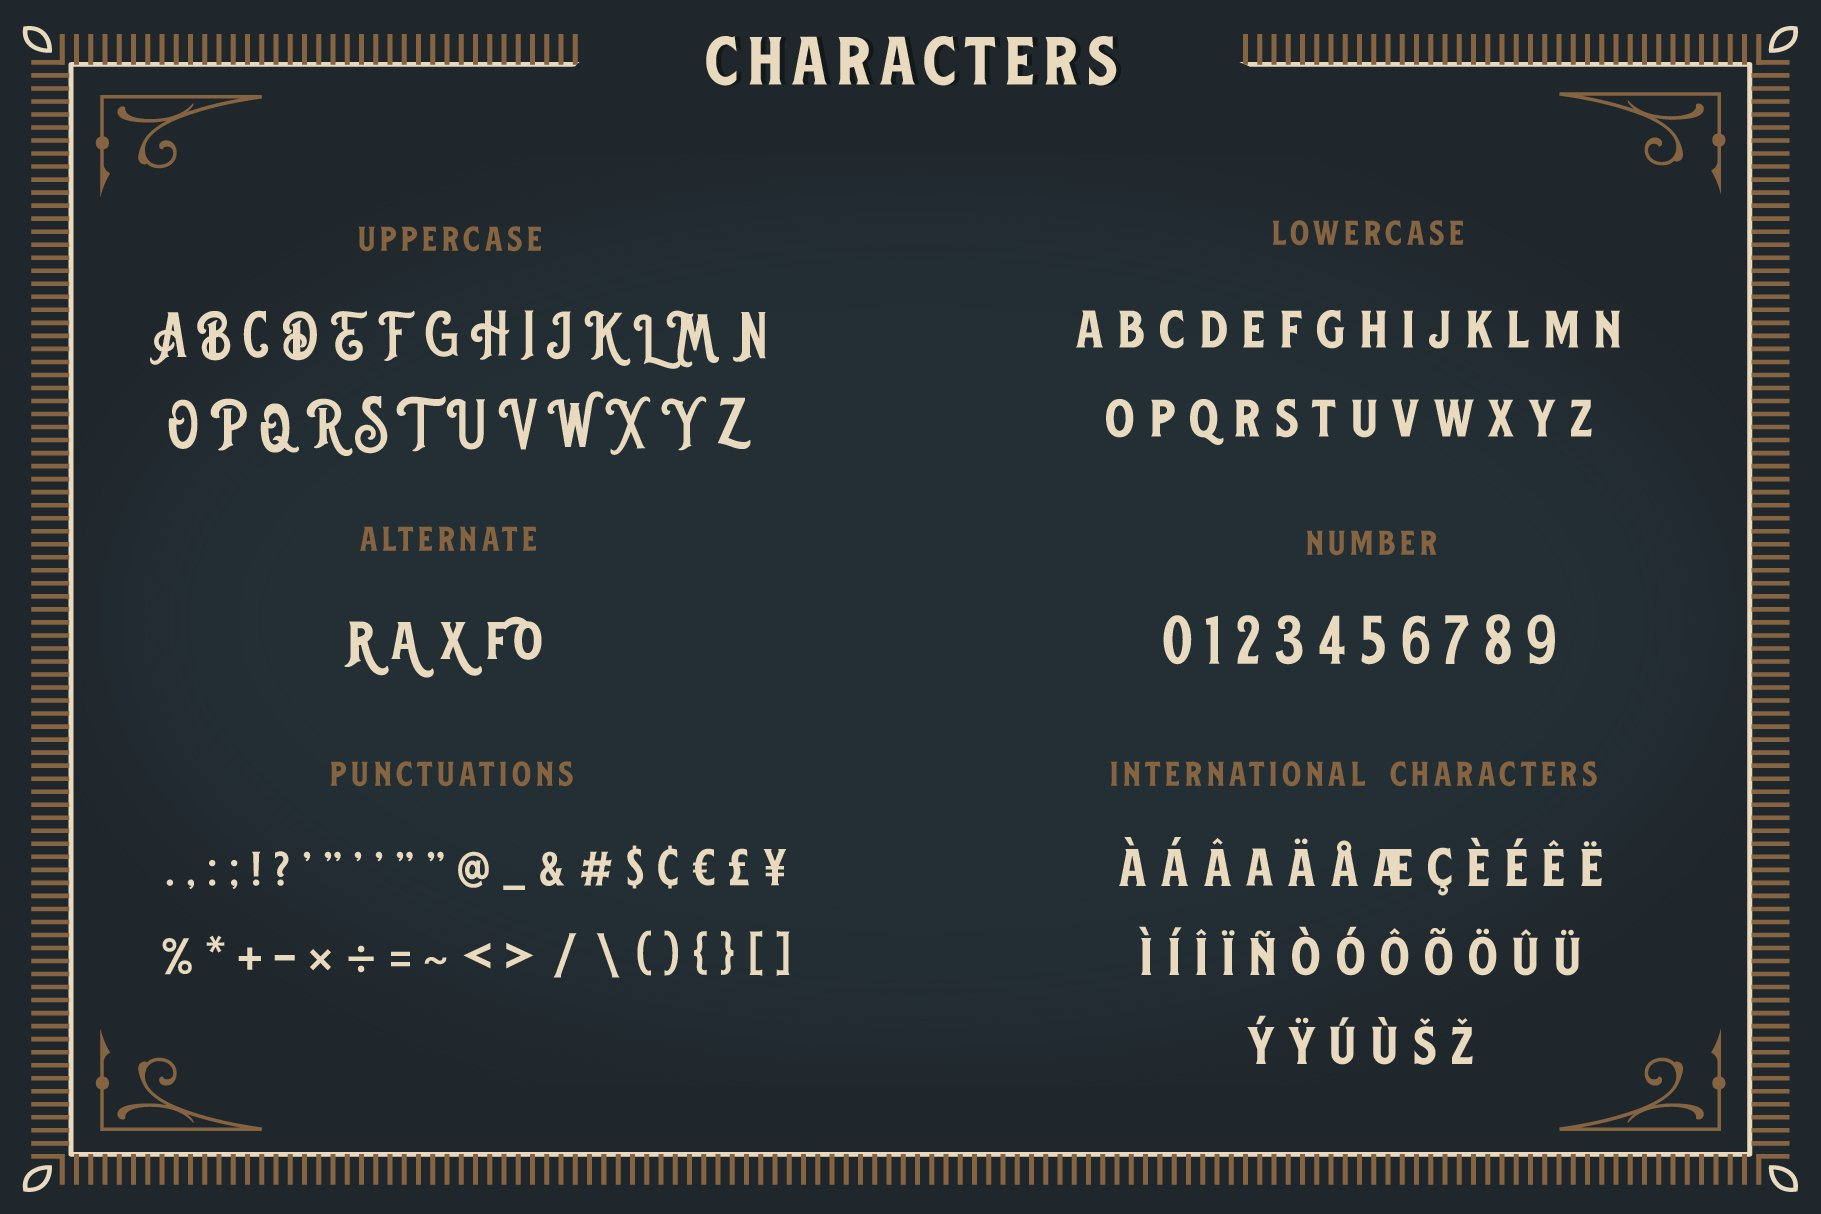 Blackford - Vintage Classic Font example image 5